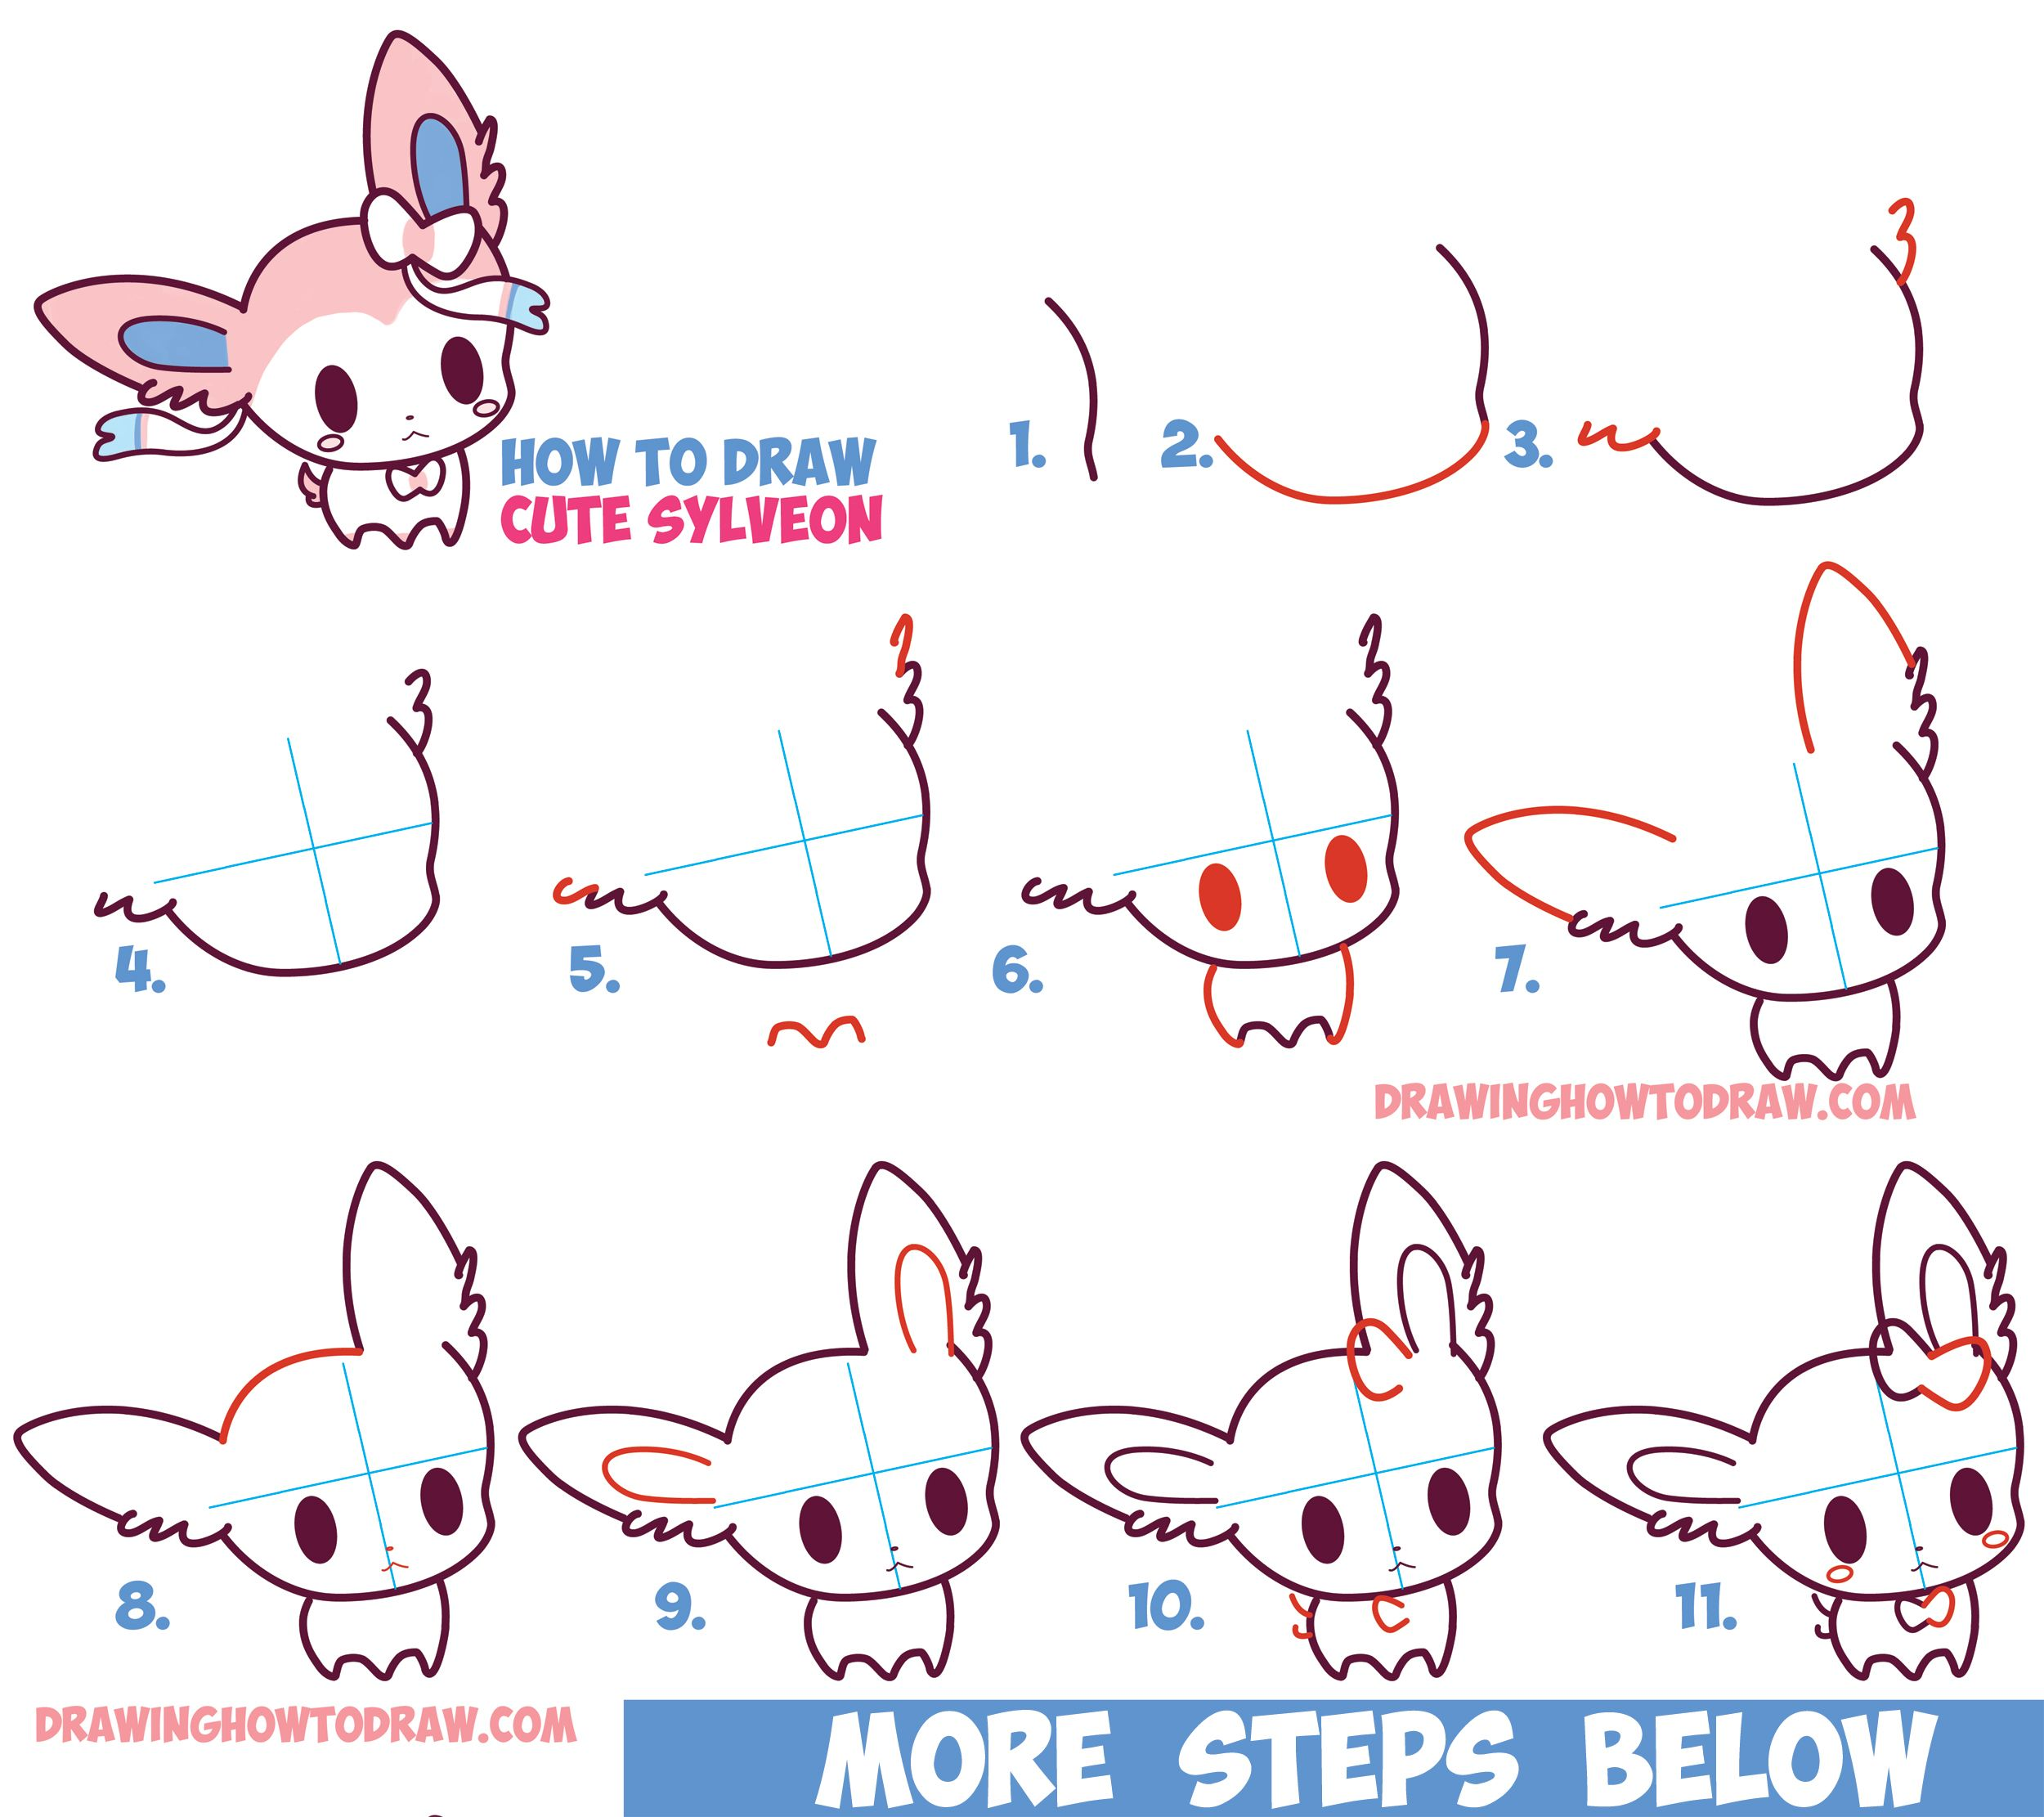 How To Draw Cute Chibi Kawaii Sylveon From Pokemon In Easy Step By Drawing Tutorial For Kids